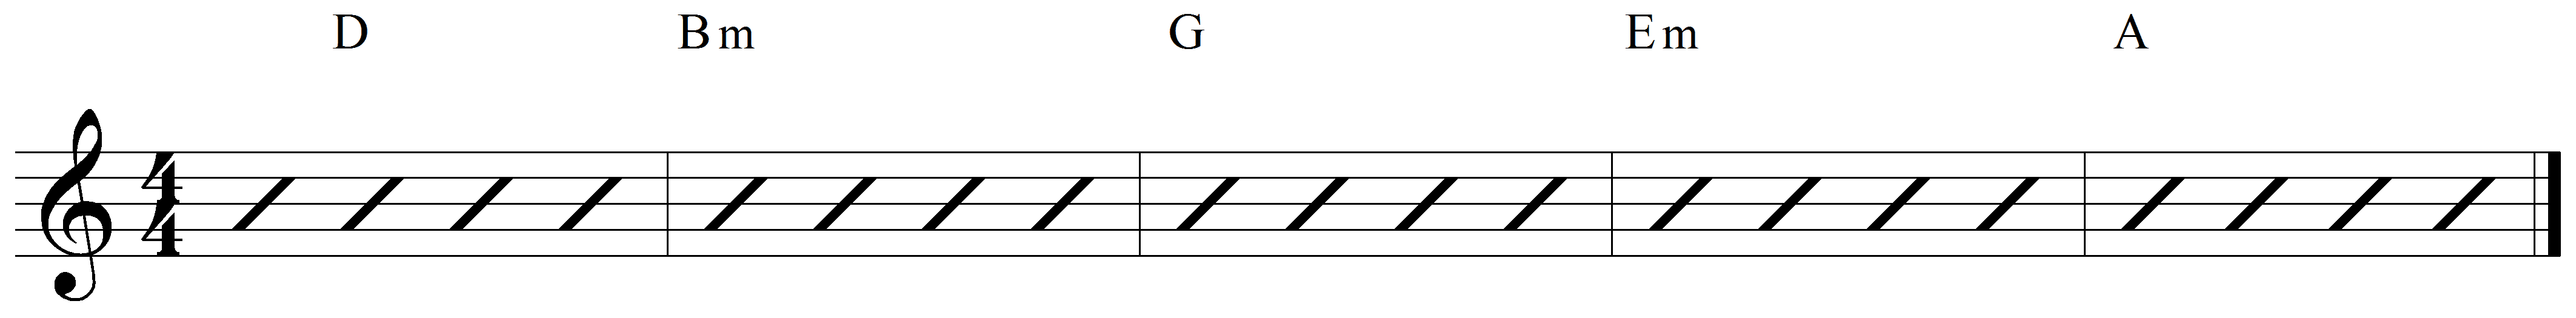 Key of D chord pattern example